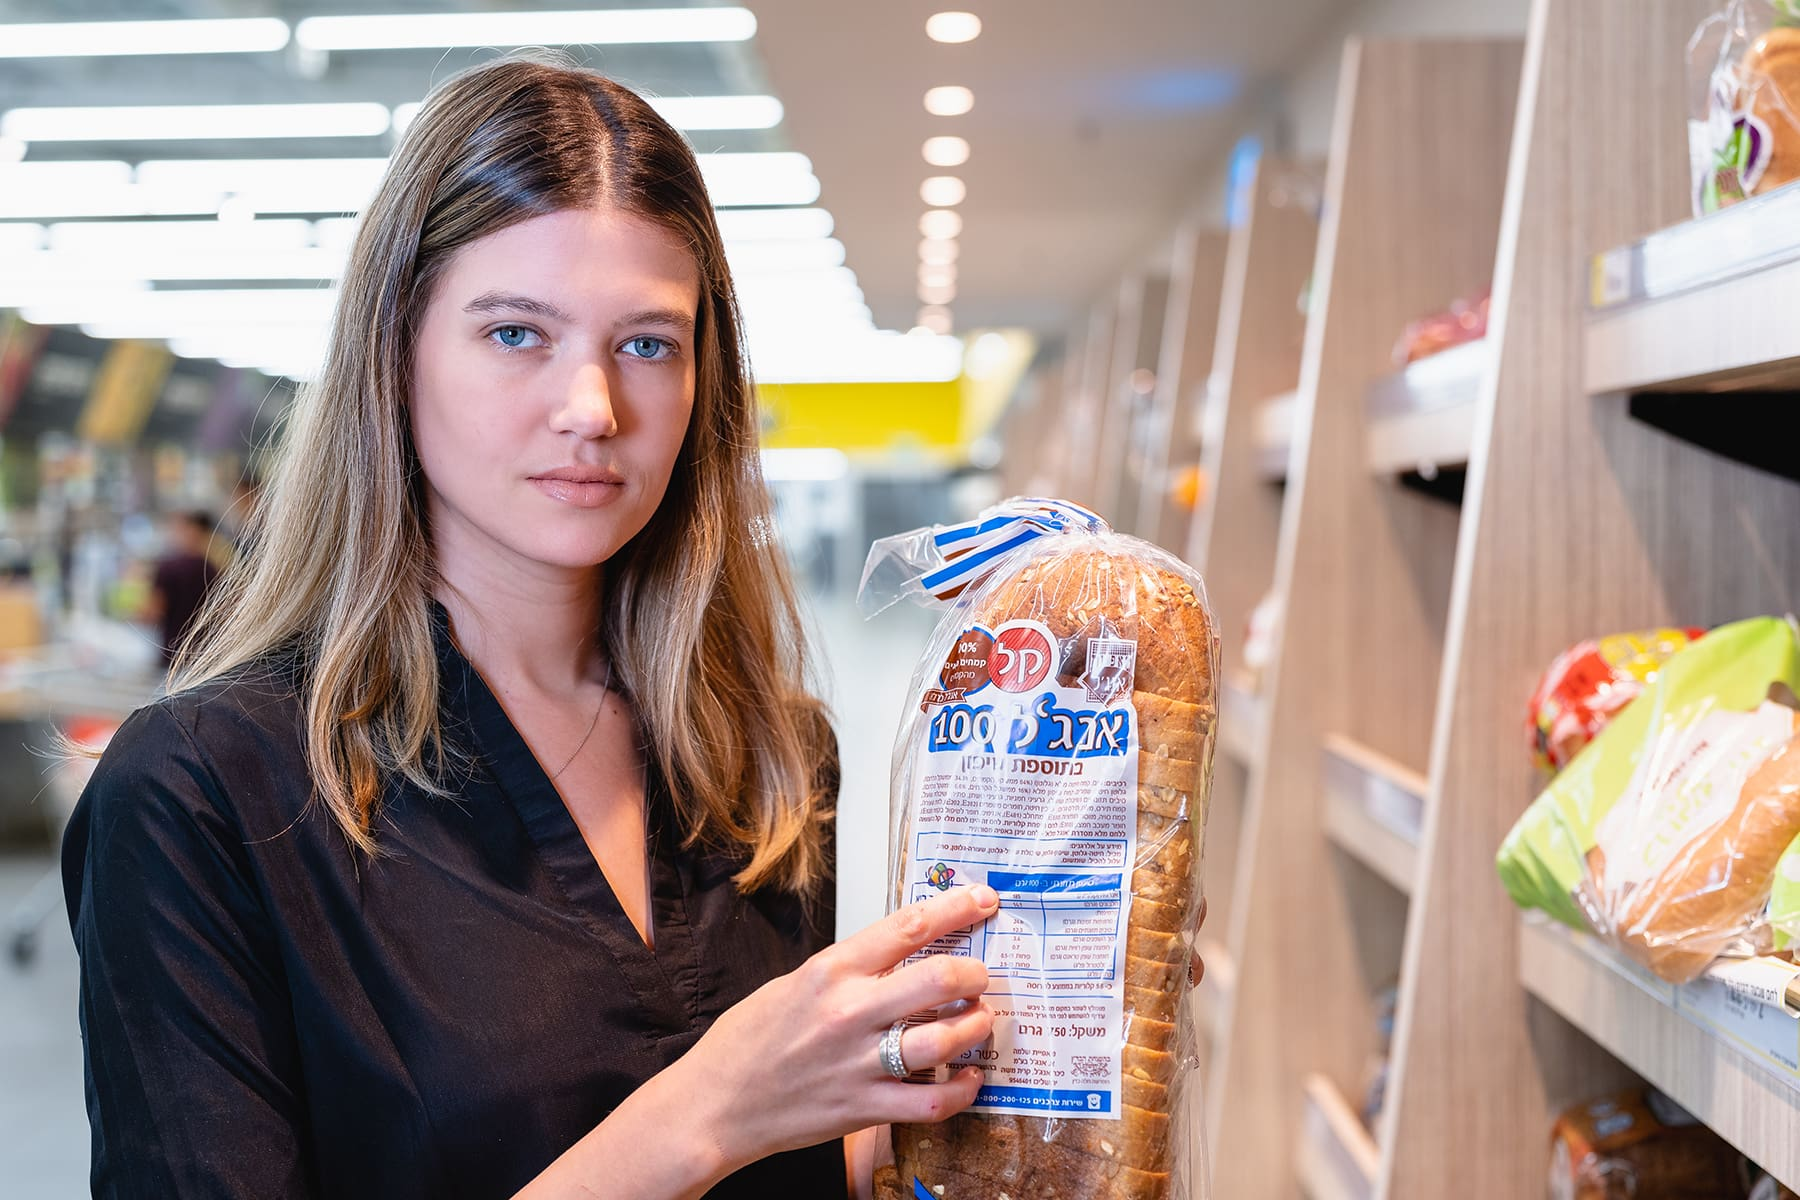 How to read the food label? Podcast episode available